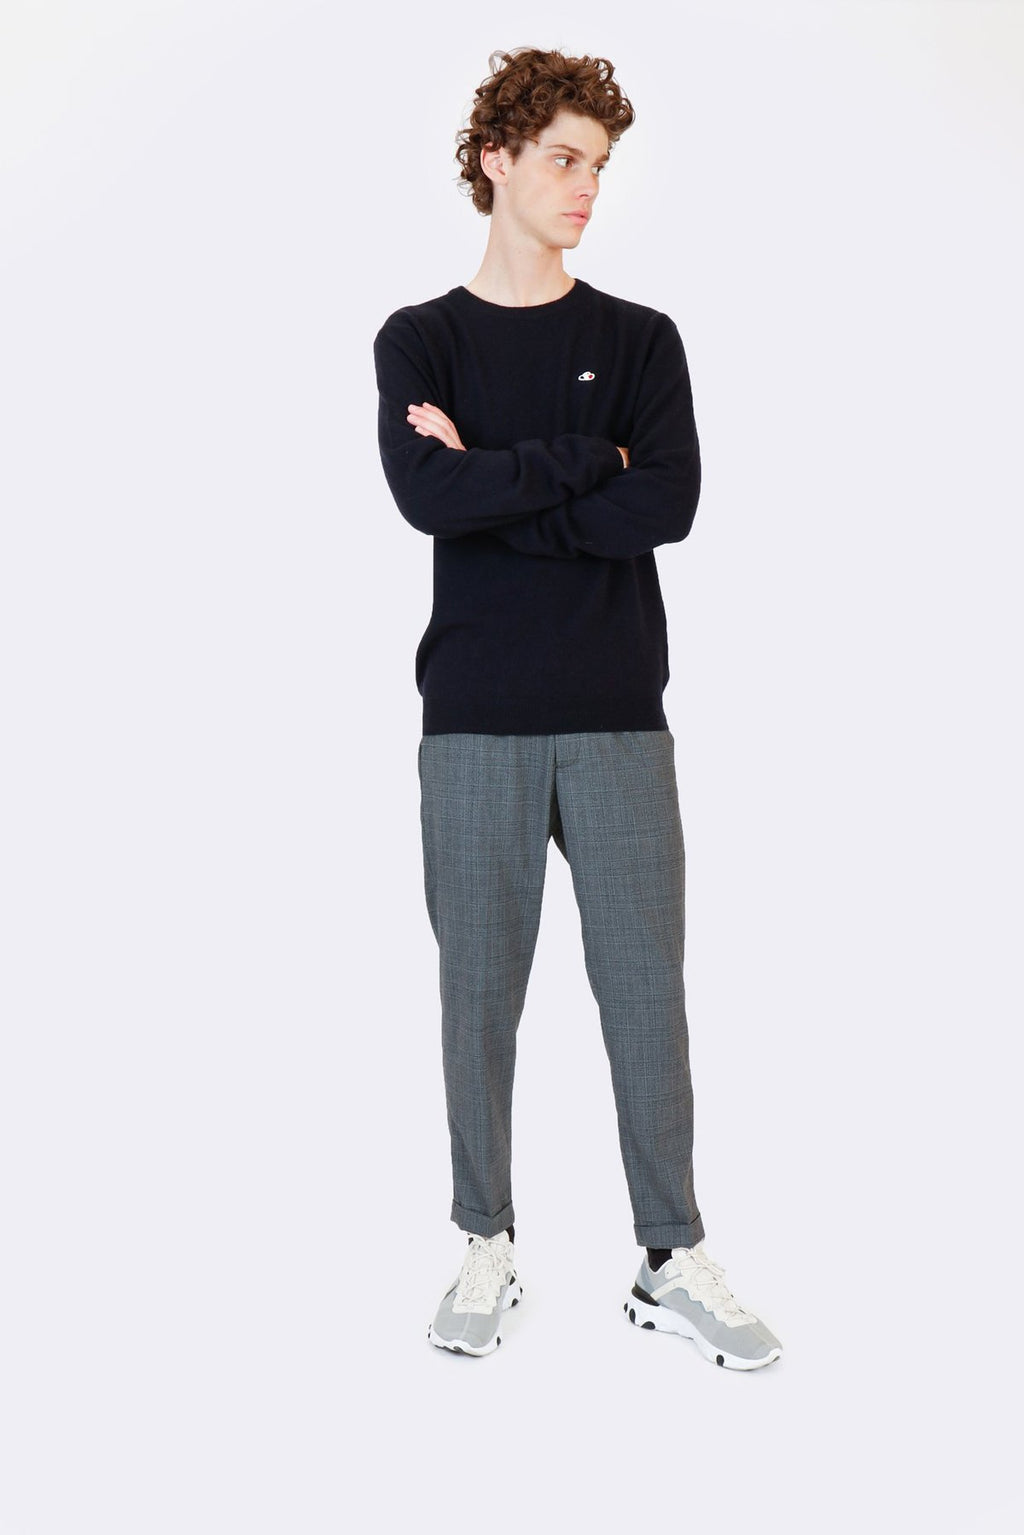 The Good People -  SWEATER KNOX - NAVY